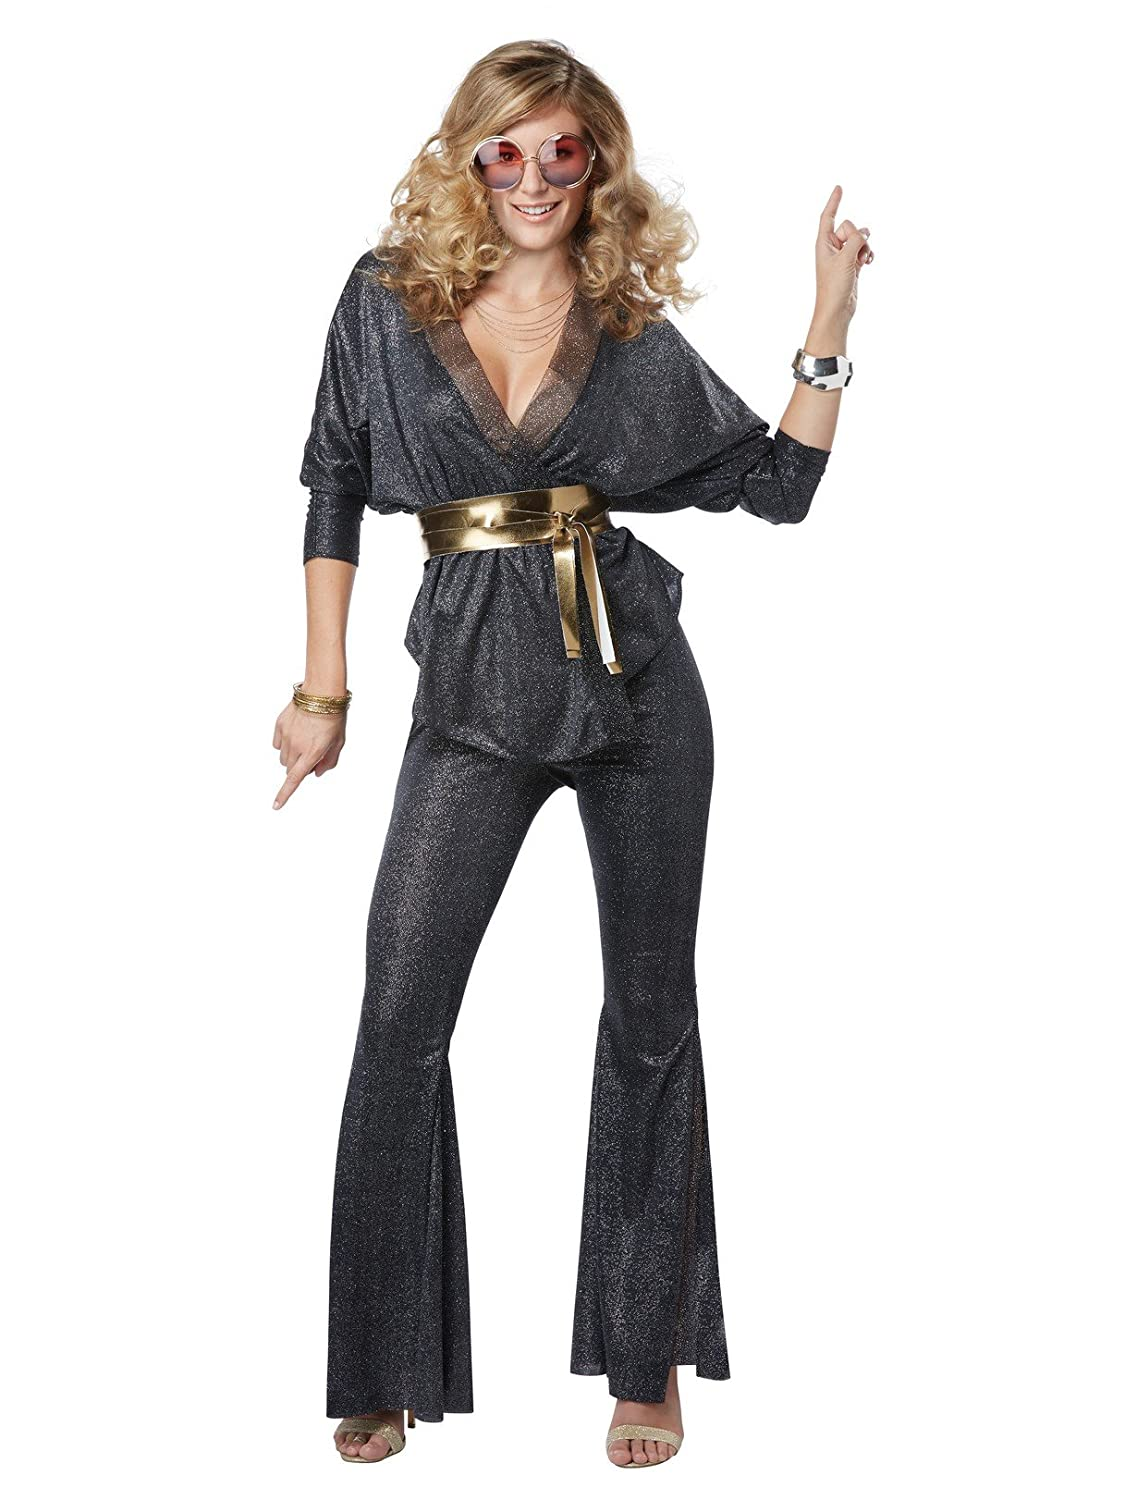 Hippie Costumes, Hippie Outfits Dazzler Disco Costume for Adults $29.13 AT vintagedancer.com